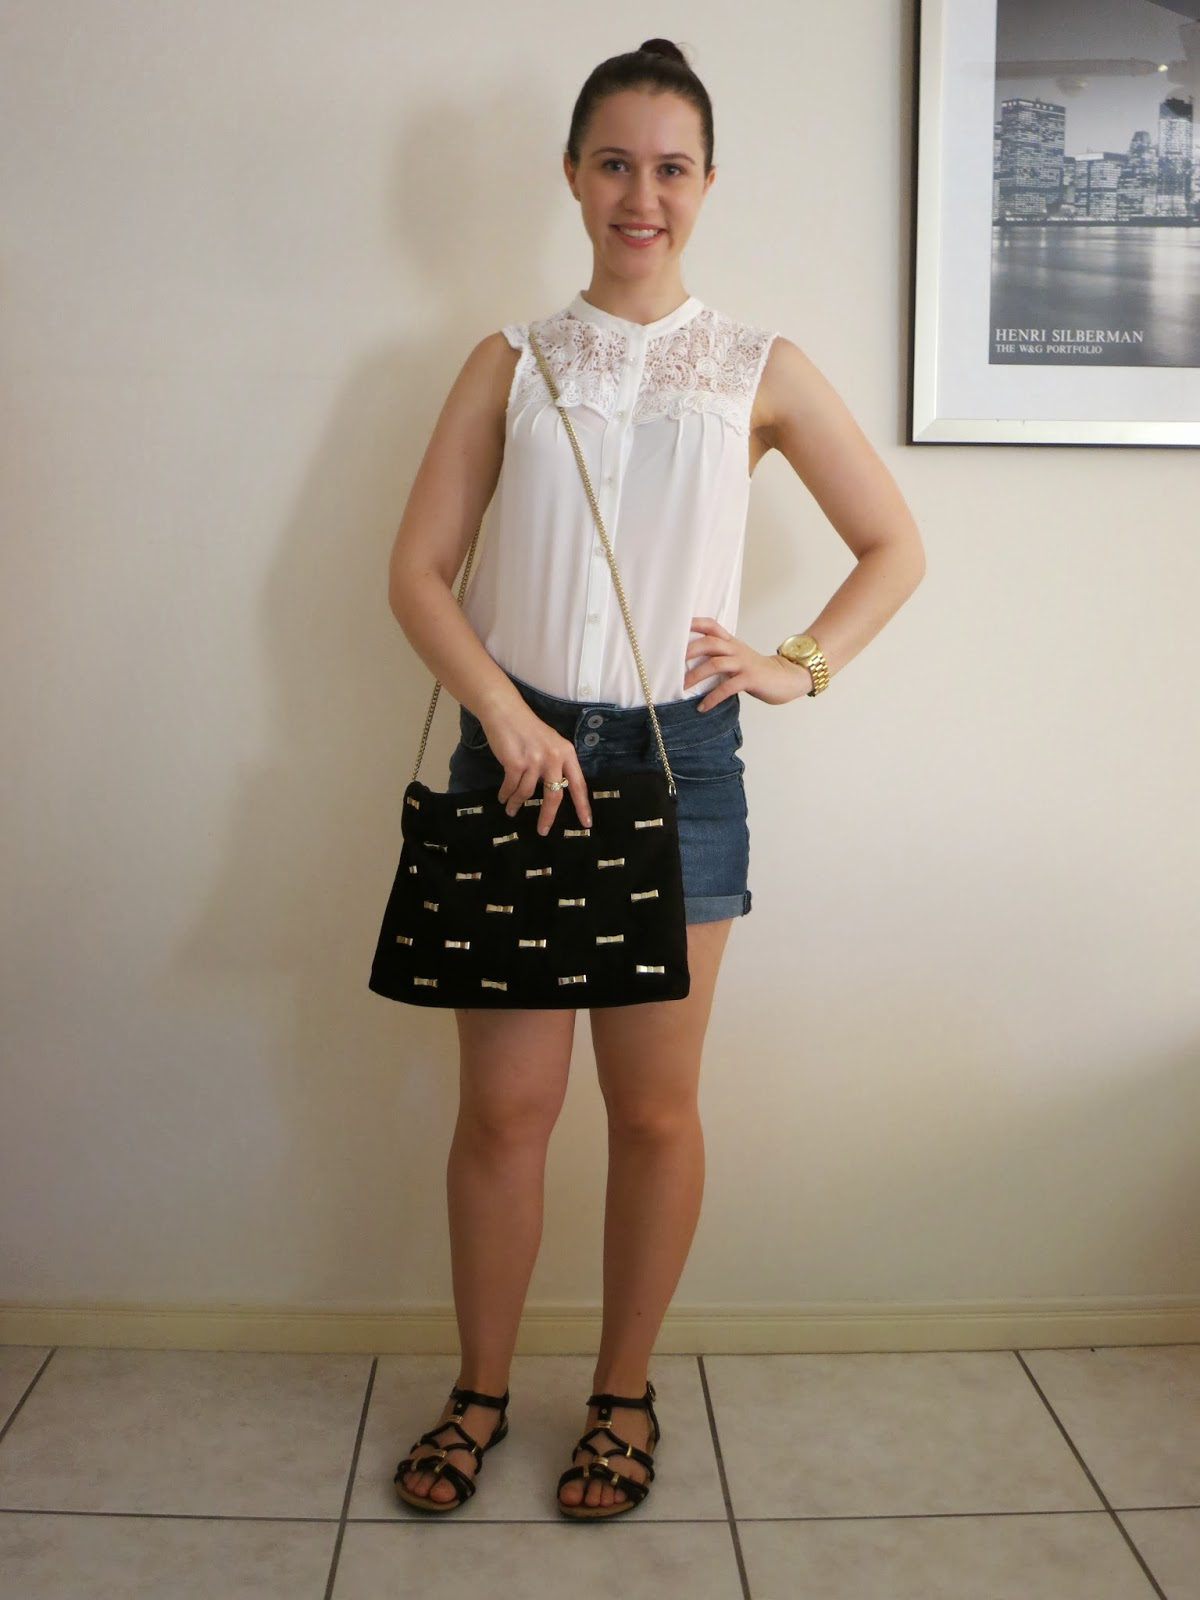 everyday outfit, college outfit, university outfit, cream sheer blouse with lace detailing, high neck blouse, denim high waisted shorts, how to style denim high waisted shorts